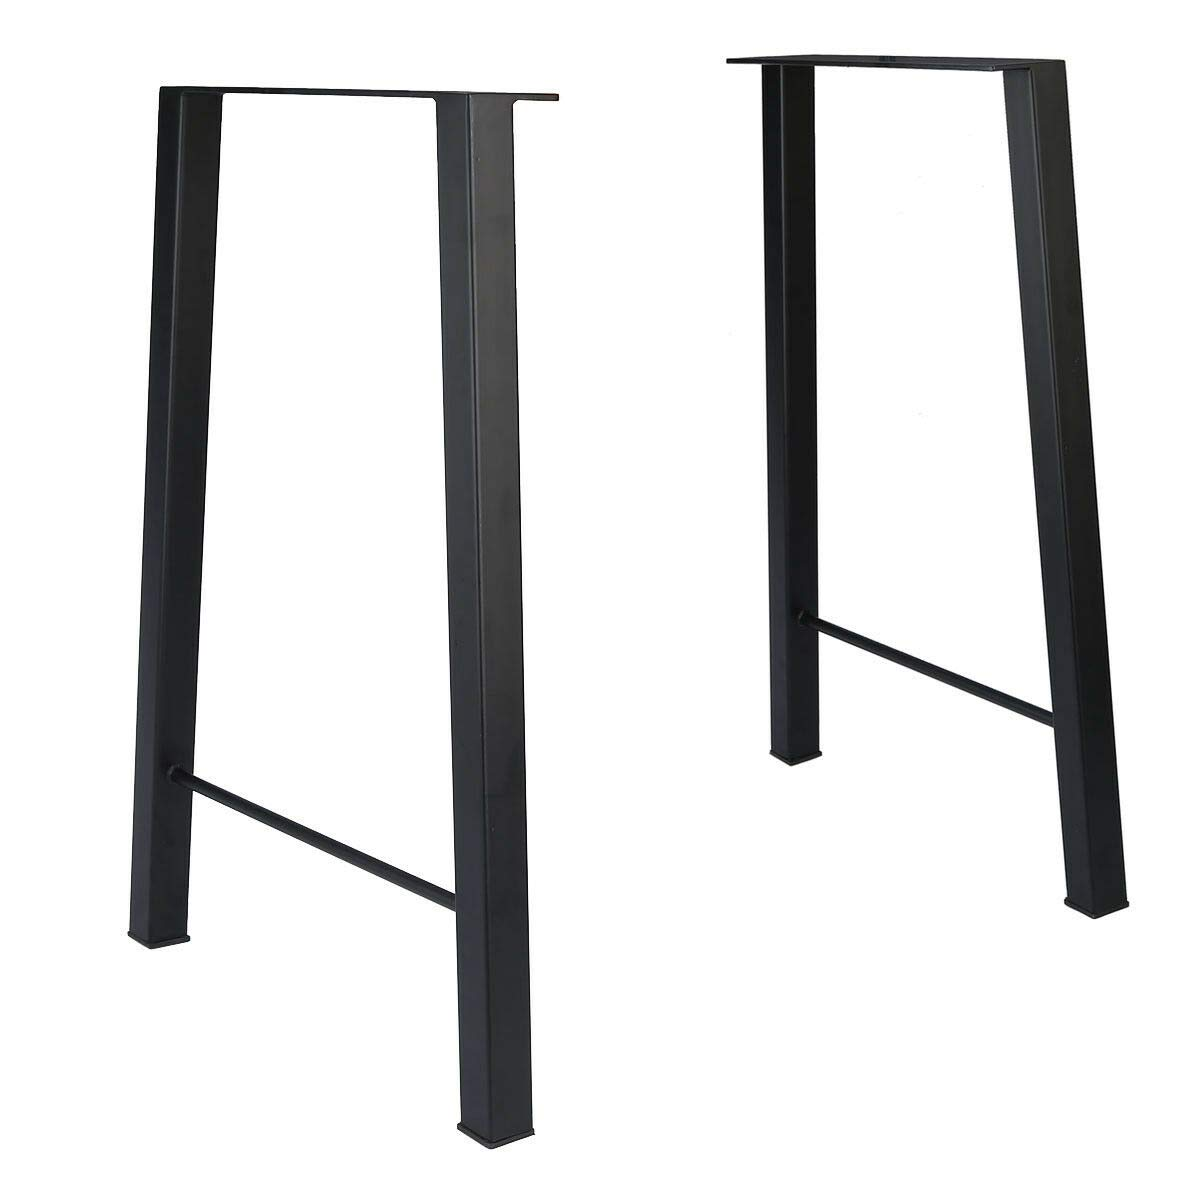 Tengchang 28'' Industry Dinner Table Leg Metal Steel Bench Legs DIY Furniture by Tengchang (Image #1)